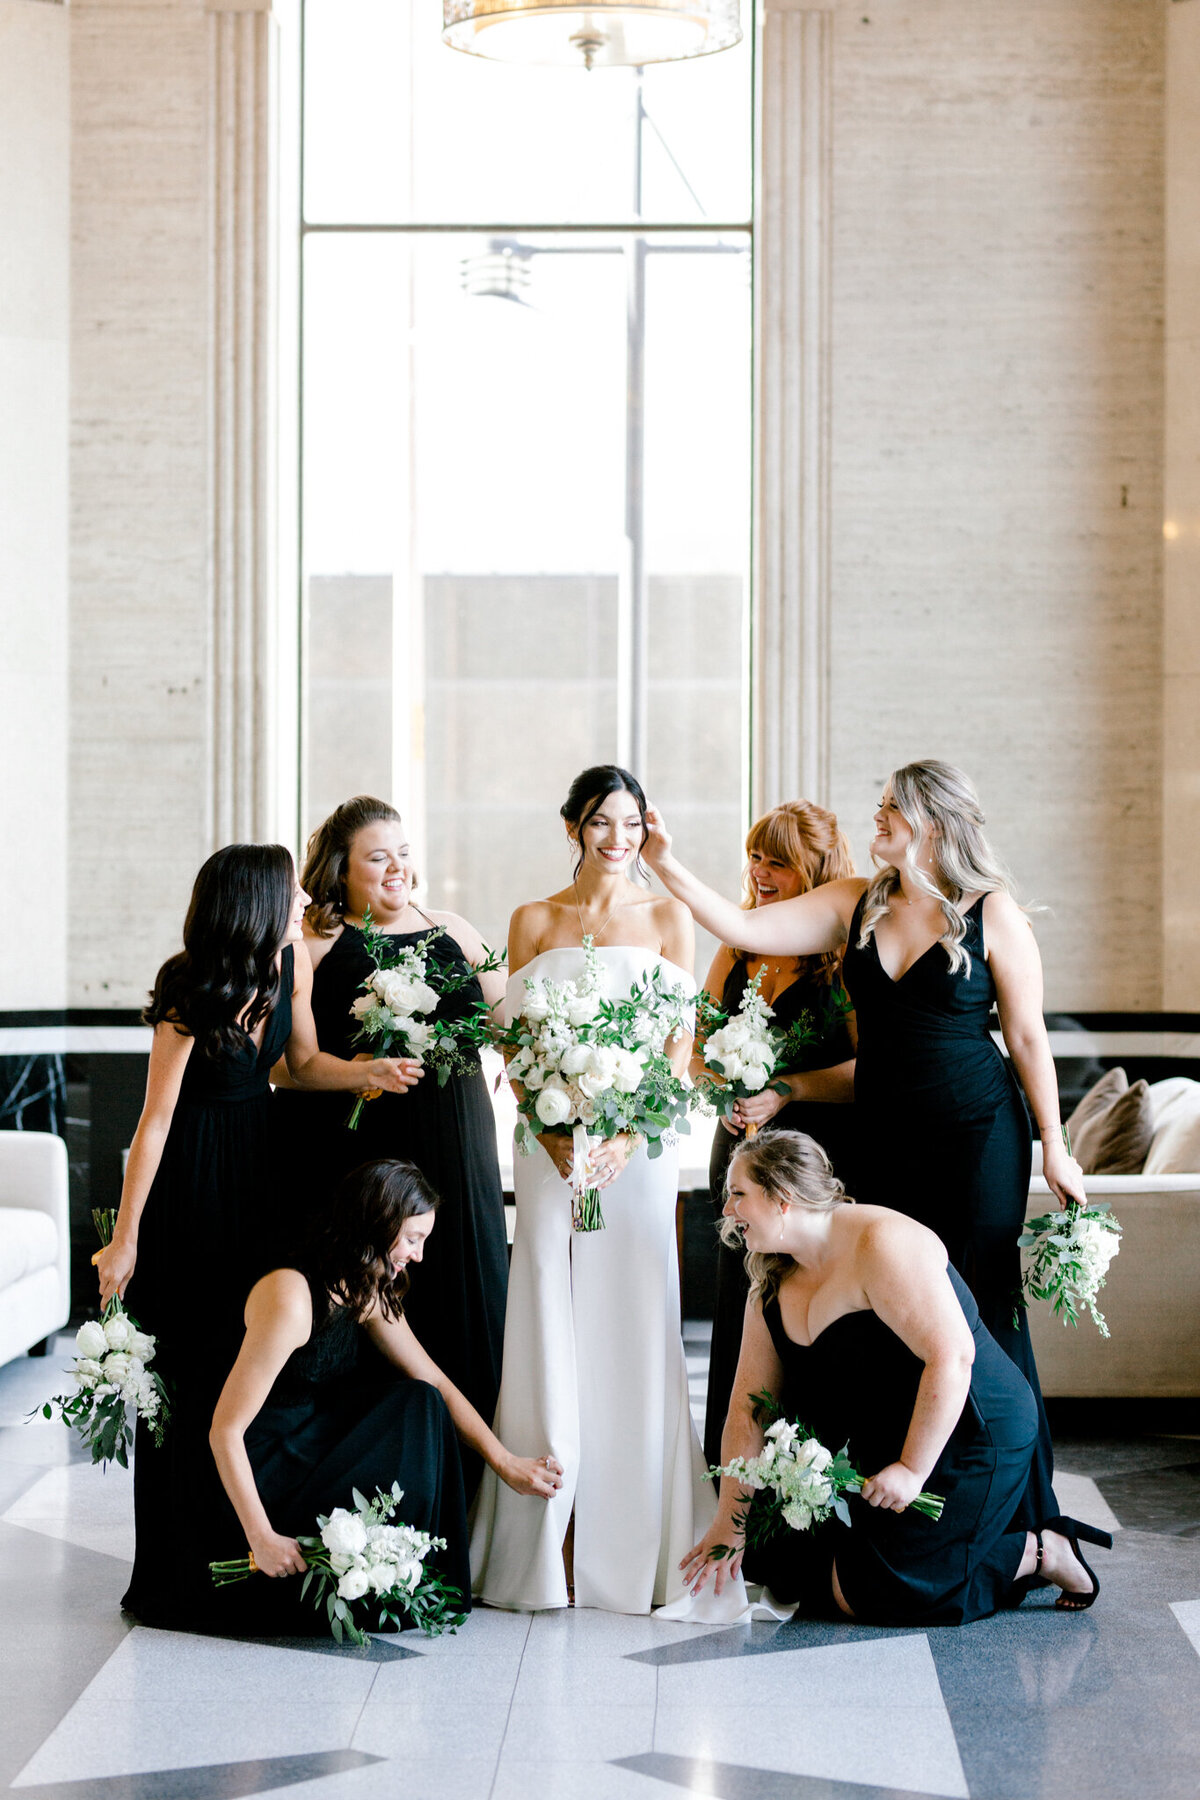 Hope & Zack's Wedding at the Carlisle Room | Dallas Wedding Photographer | Sami Kathryn Photography-35